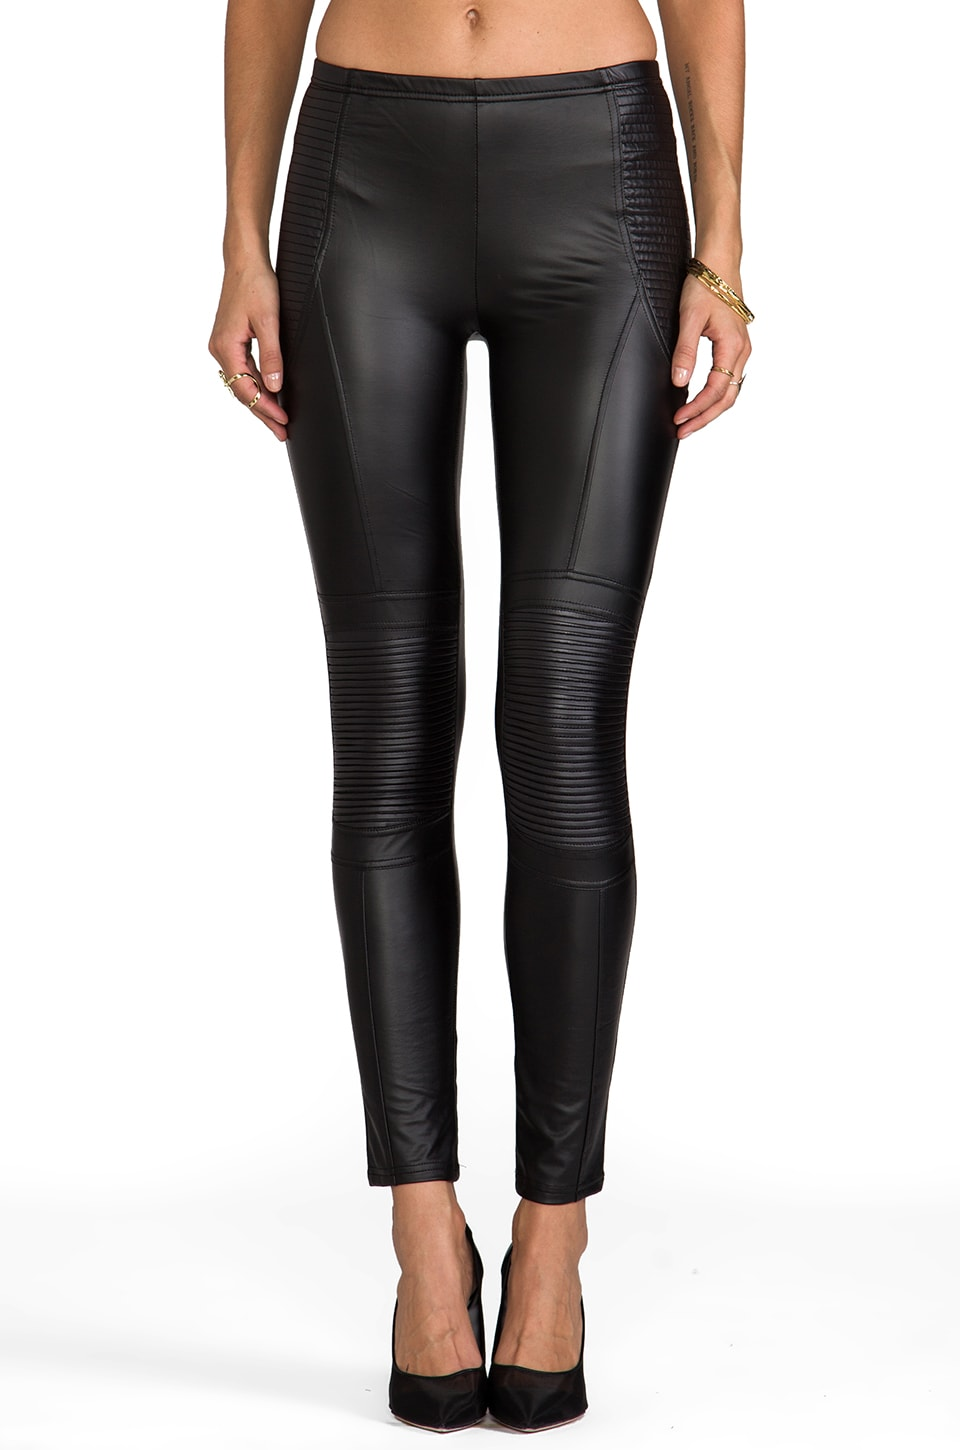 MINKPINK Vroom Vroom Leggings in Black